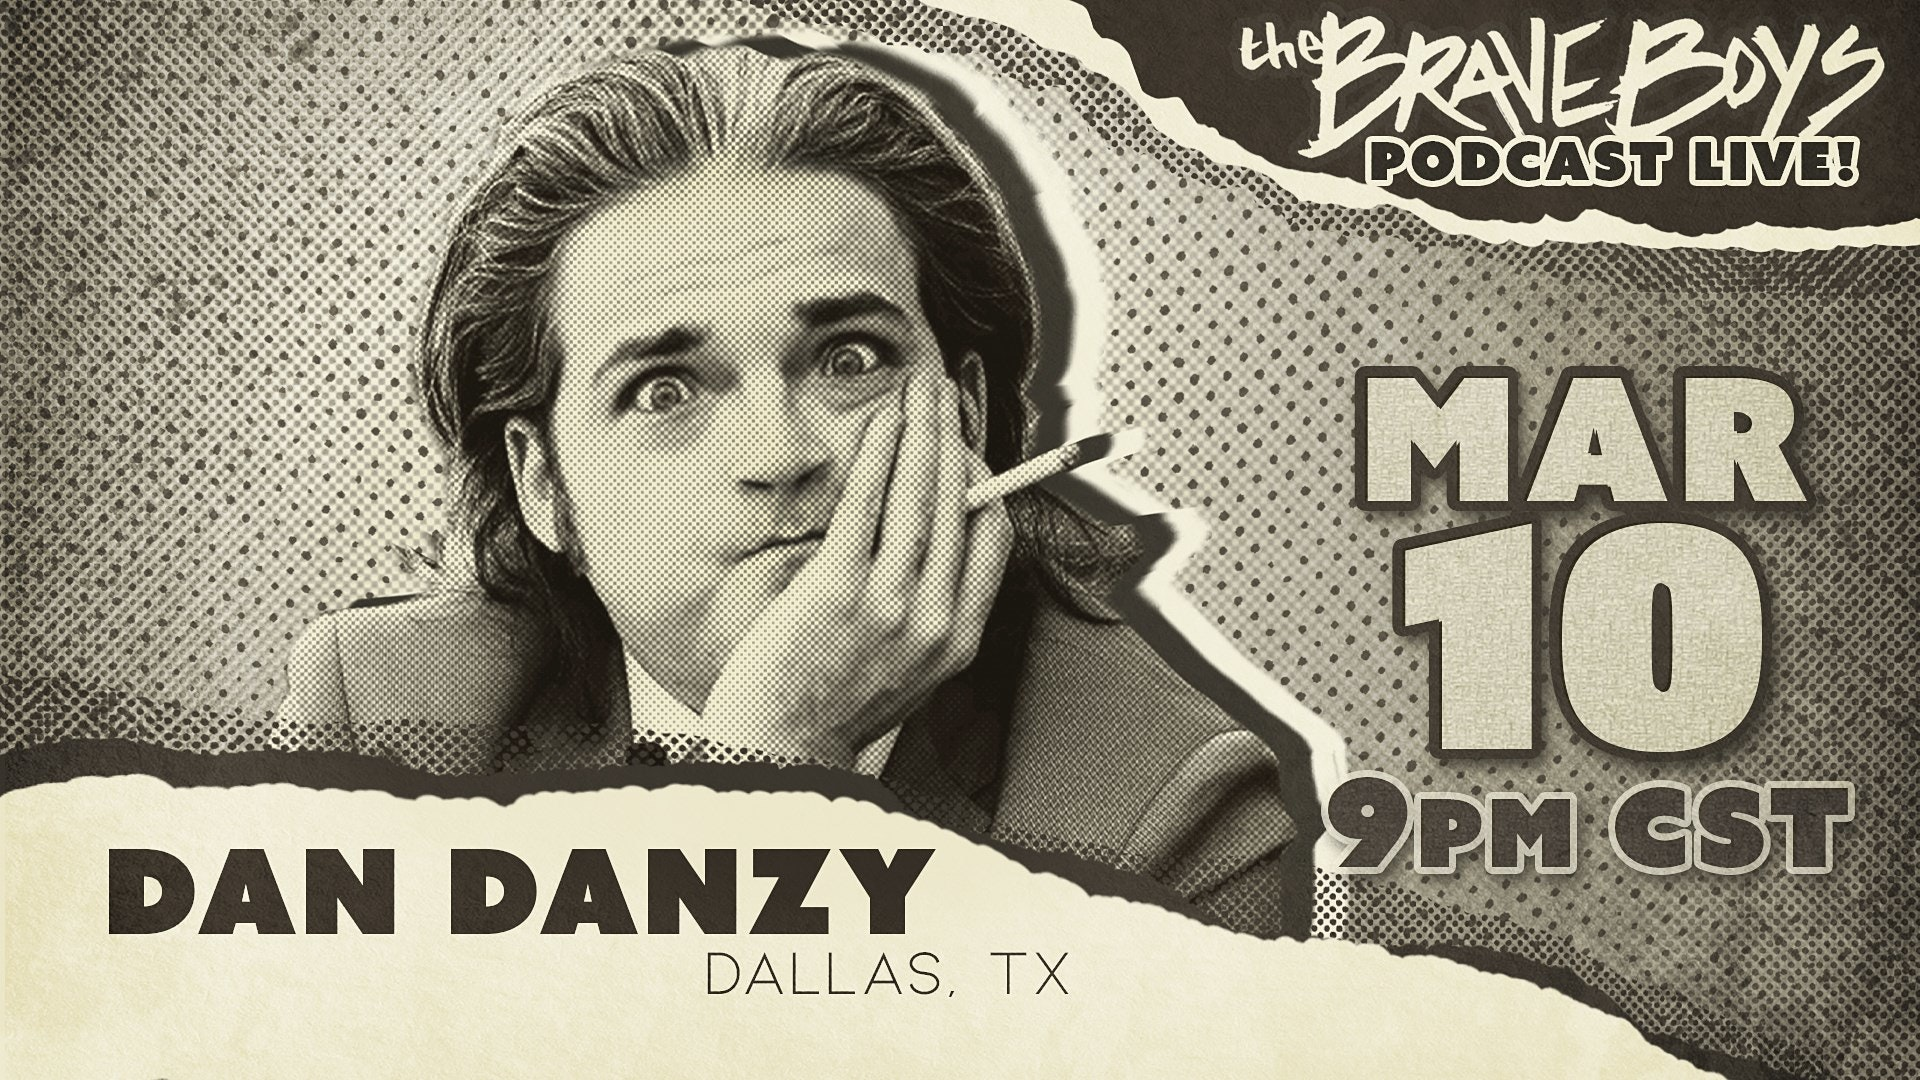 The Brave Boys Comedy Podcast Live! features Dan Danzy